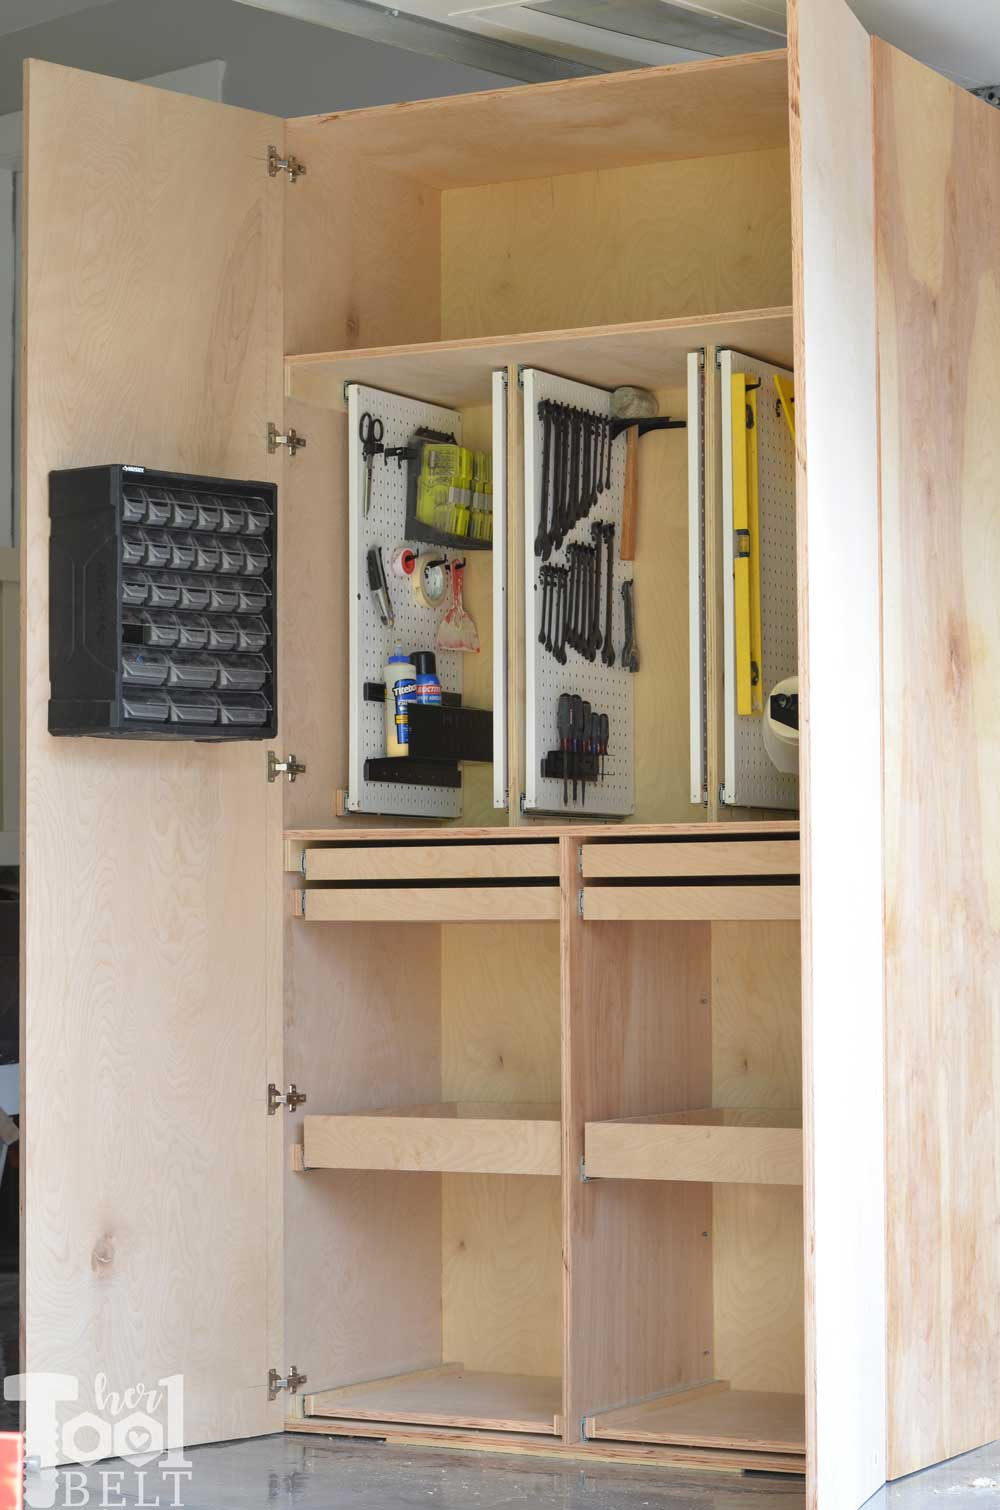 hand tool storage cabinet door open